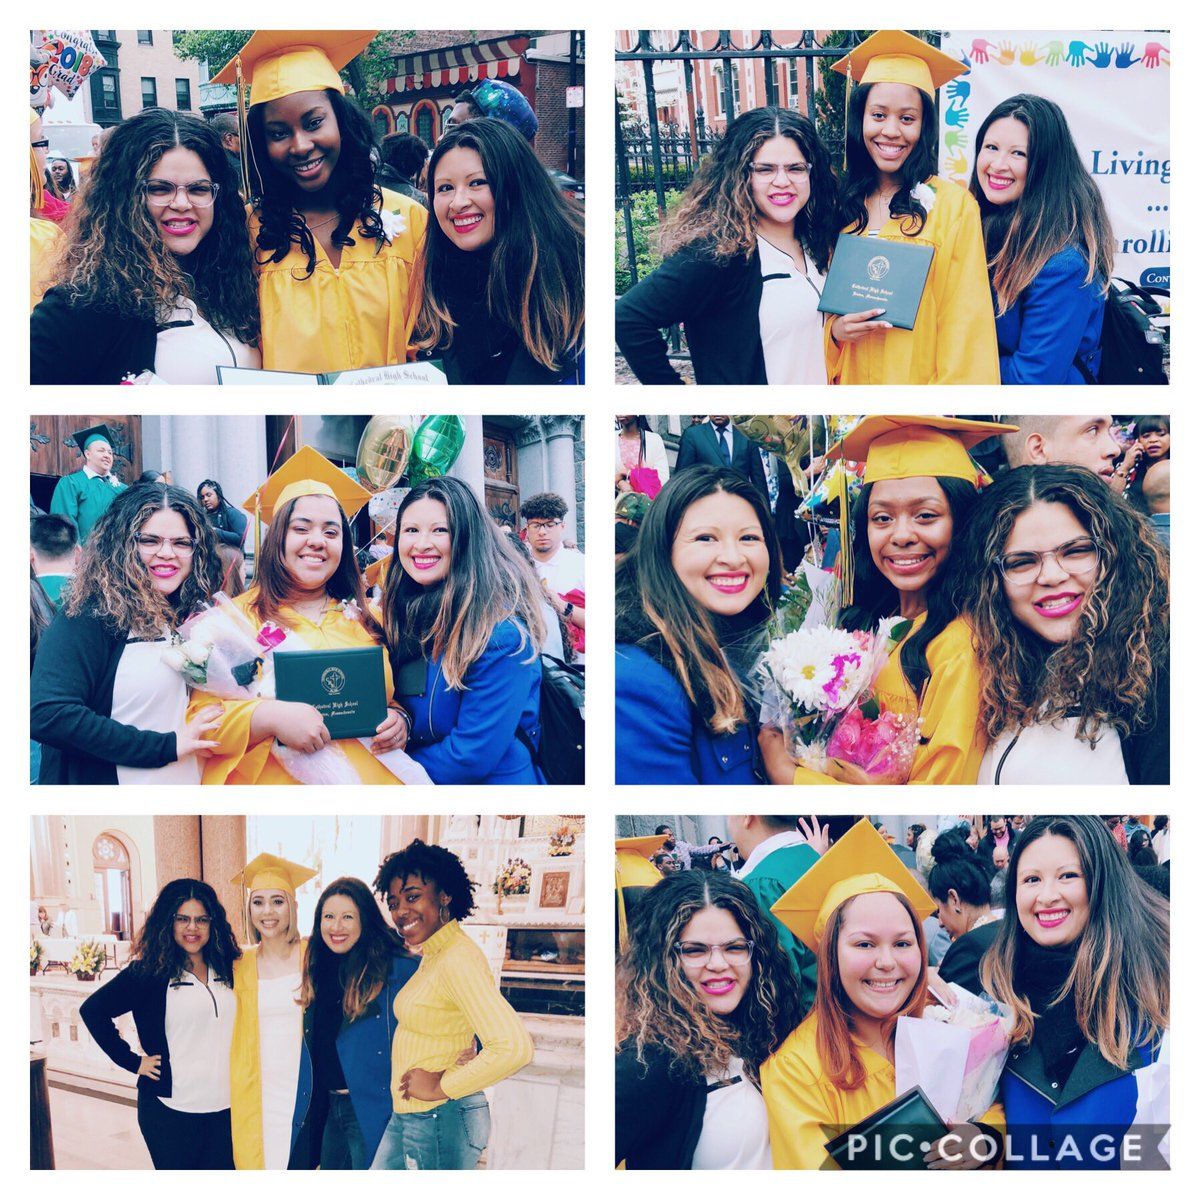 test Twitter Media - Our success depends on High School graduations: Congrats to our #2k18🎓 @CHSBoston graduates!  We were so honored to see these young women cross the stage.  The future just brighter as another generation graduated! ✨ #thatsachica https://t.co/wFUKsdg9Ka